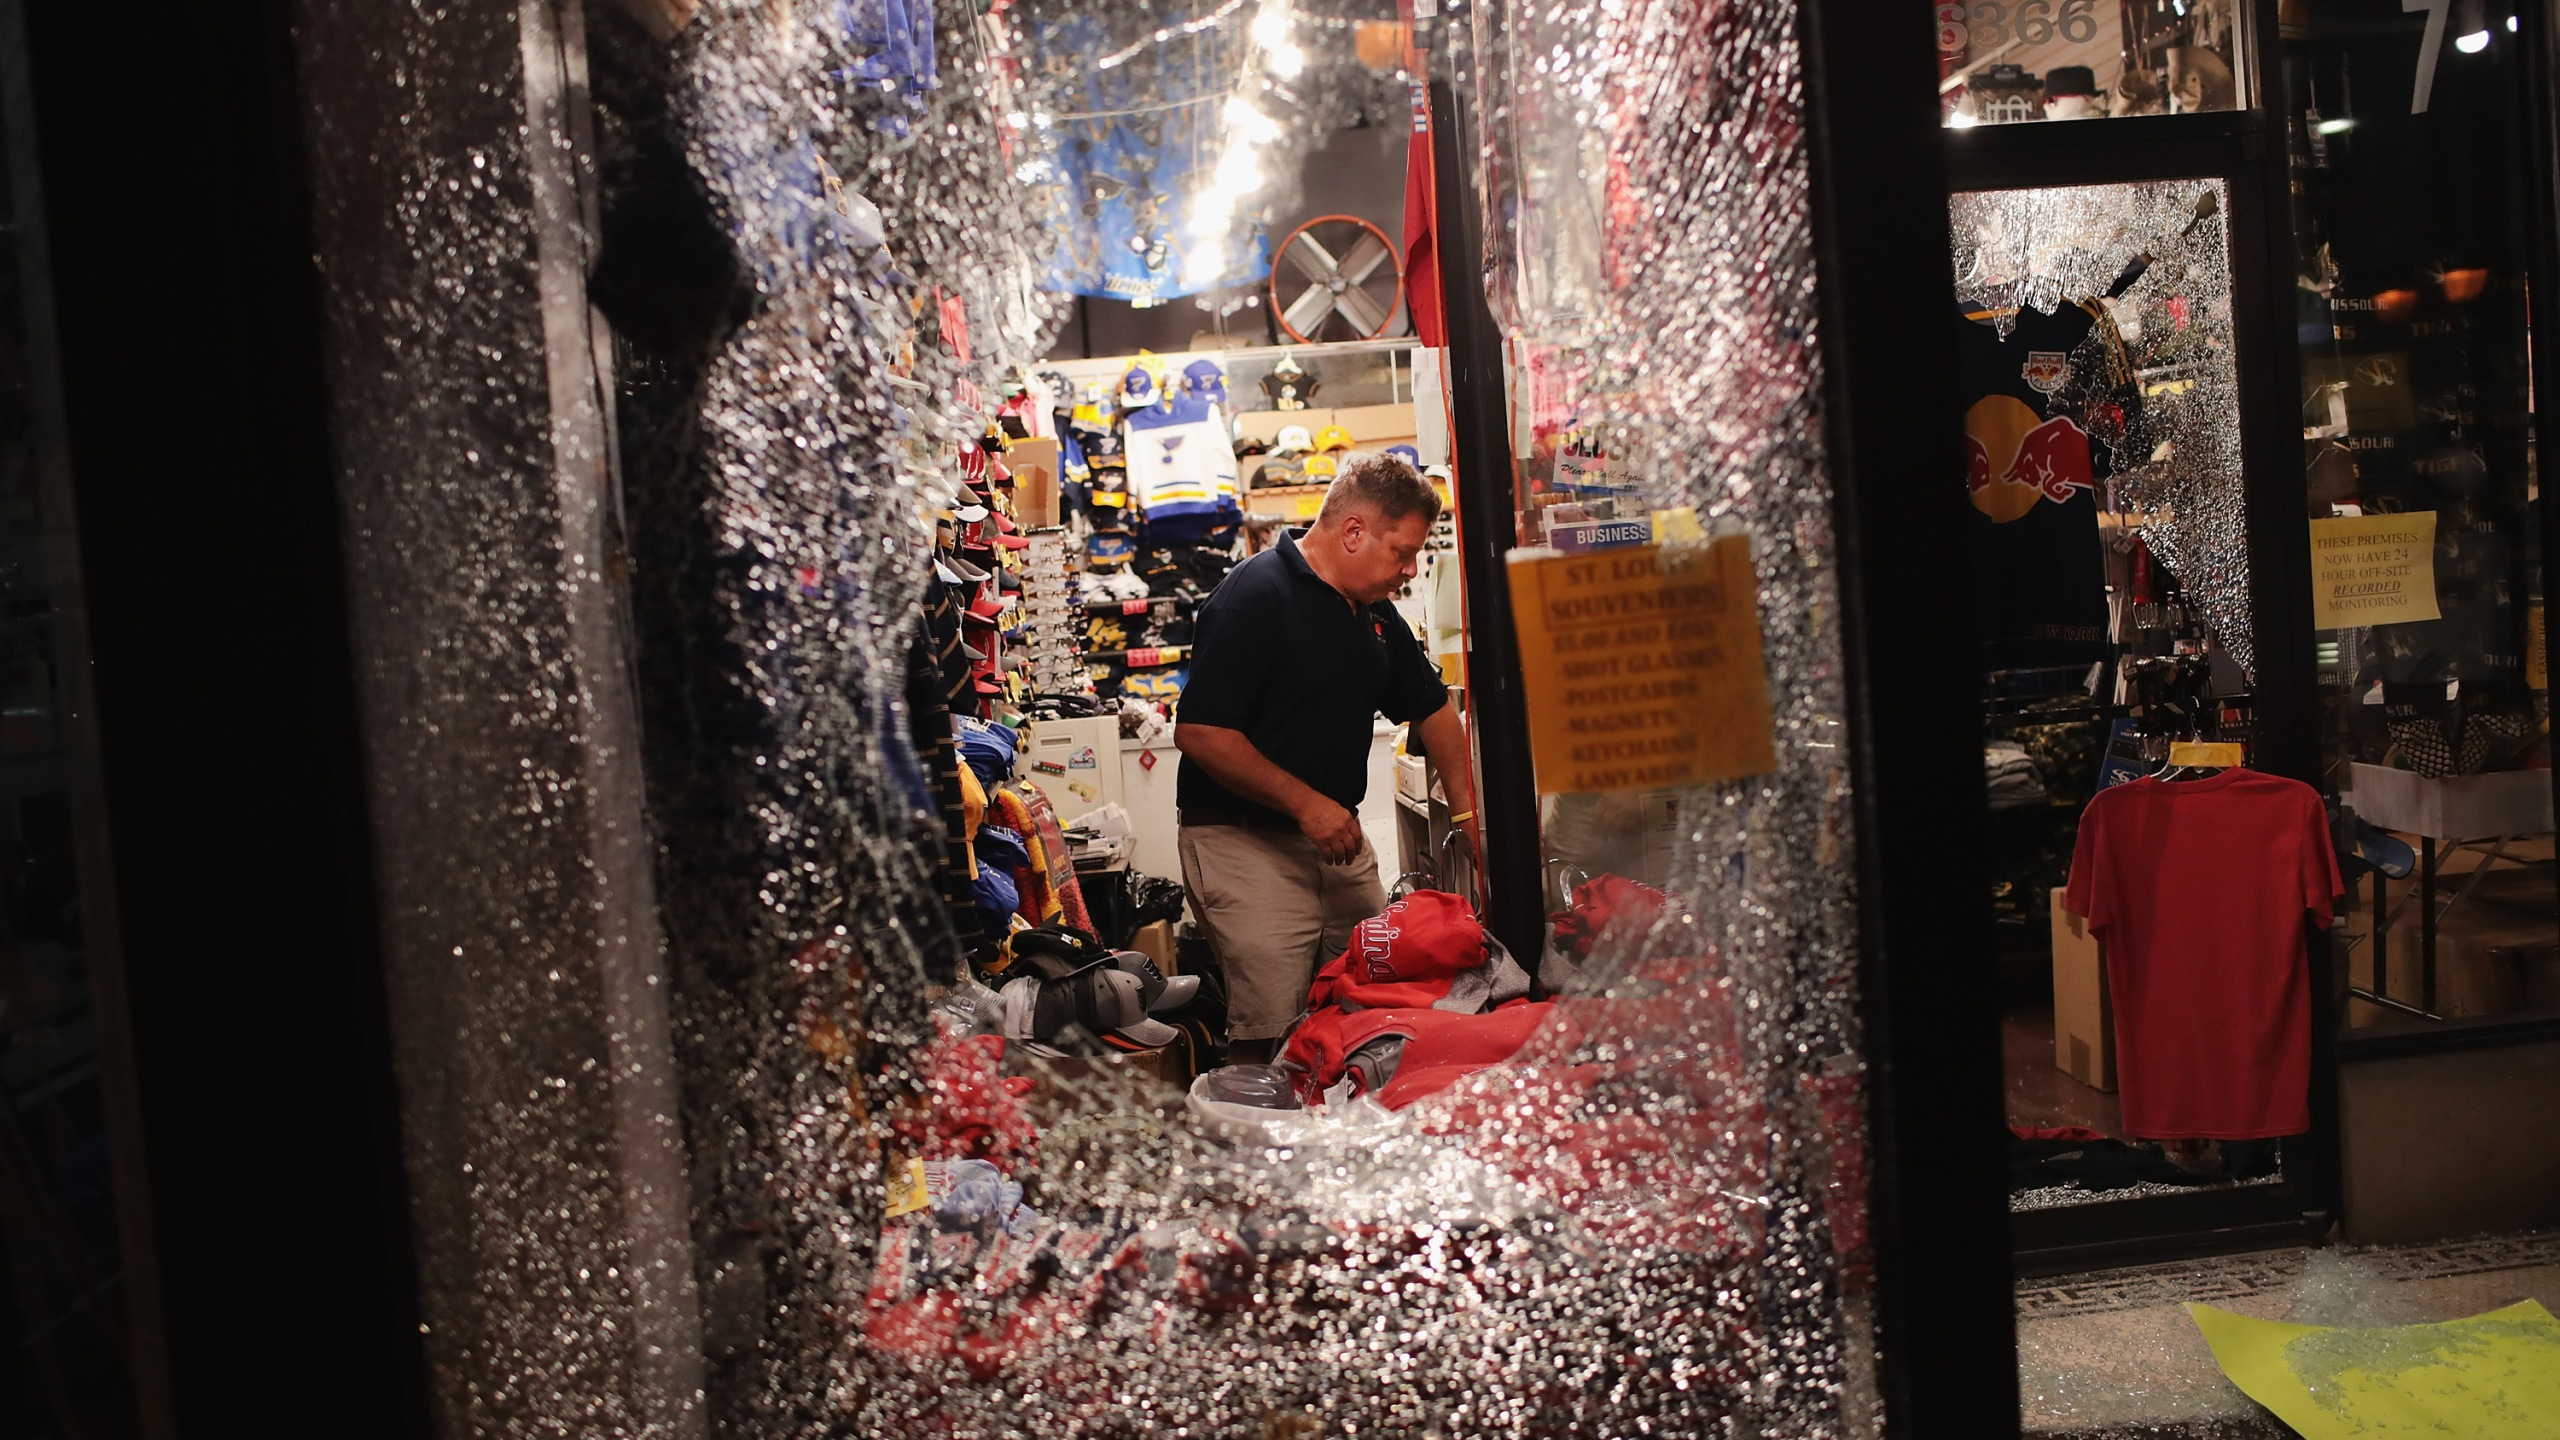 A worker cleans up broken glass from a window smashed during a protest of the acquittal of former St. Louis police officer Jason Stockley on Sept. 16, 2017, in St. Louis, Missouri. (Credit: Scott Olson / Getty Images)